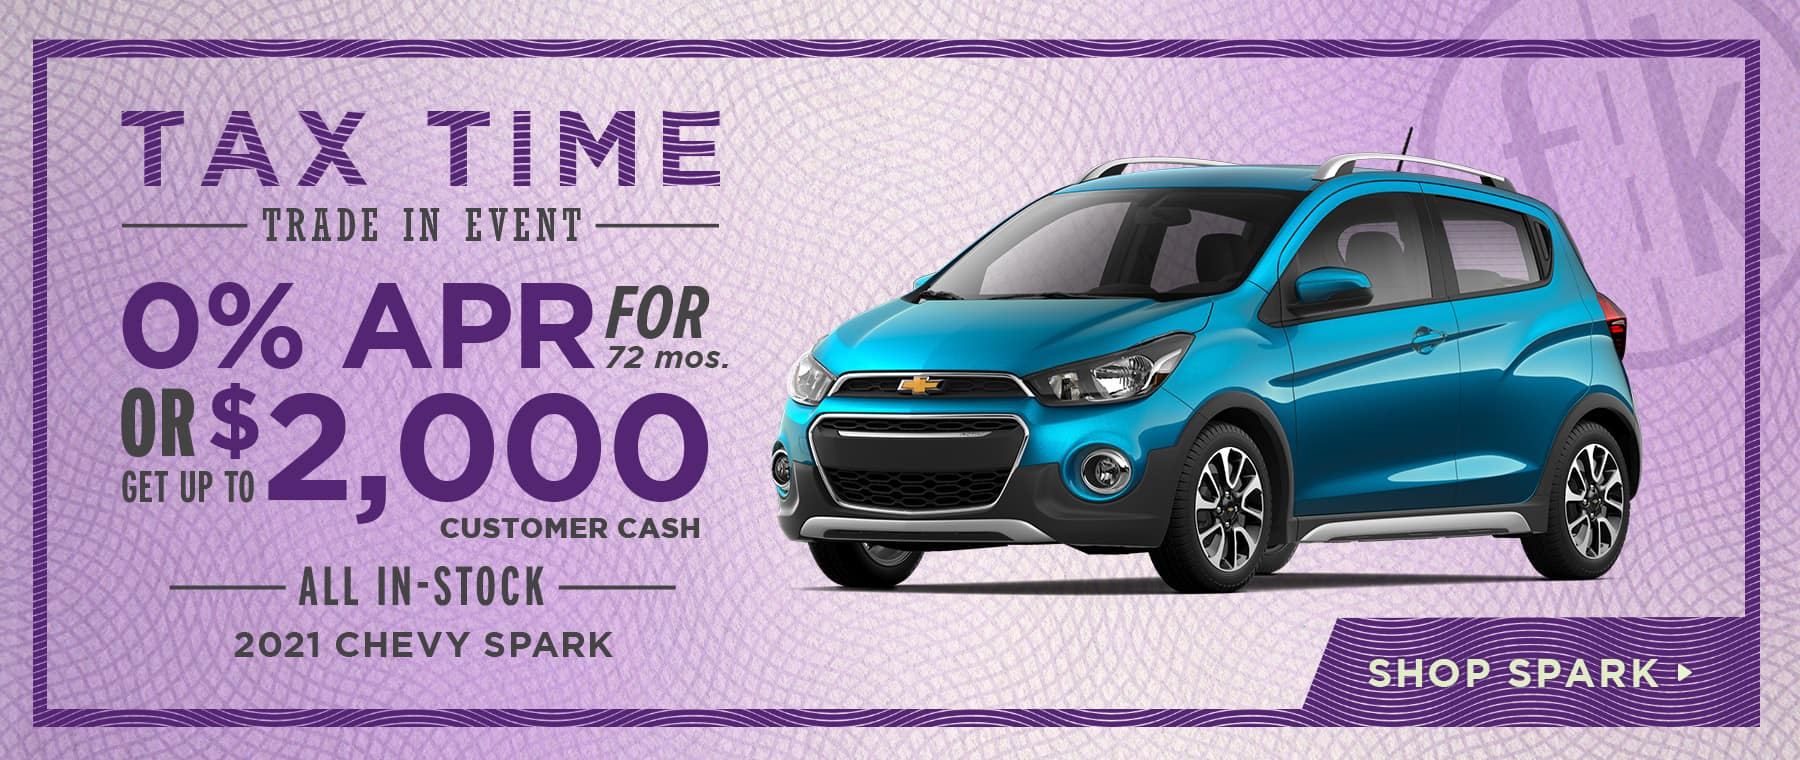 0% for 72 mos. OR Get Up To $2,000 Customer Cash All In-Stock 20201 Chevy Spark